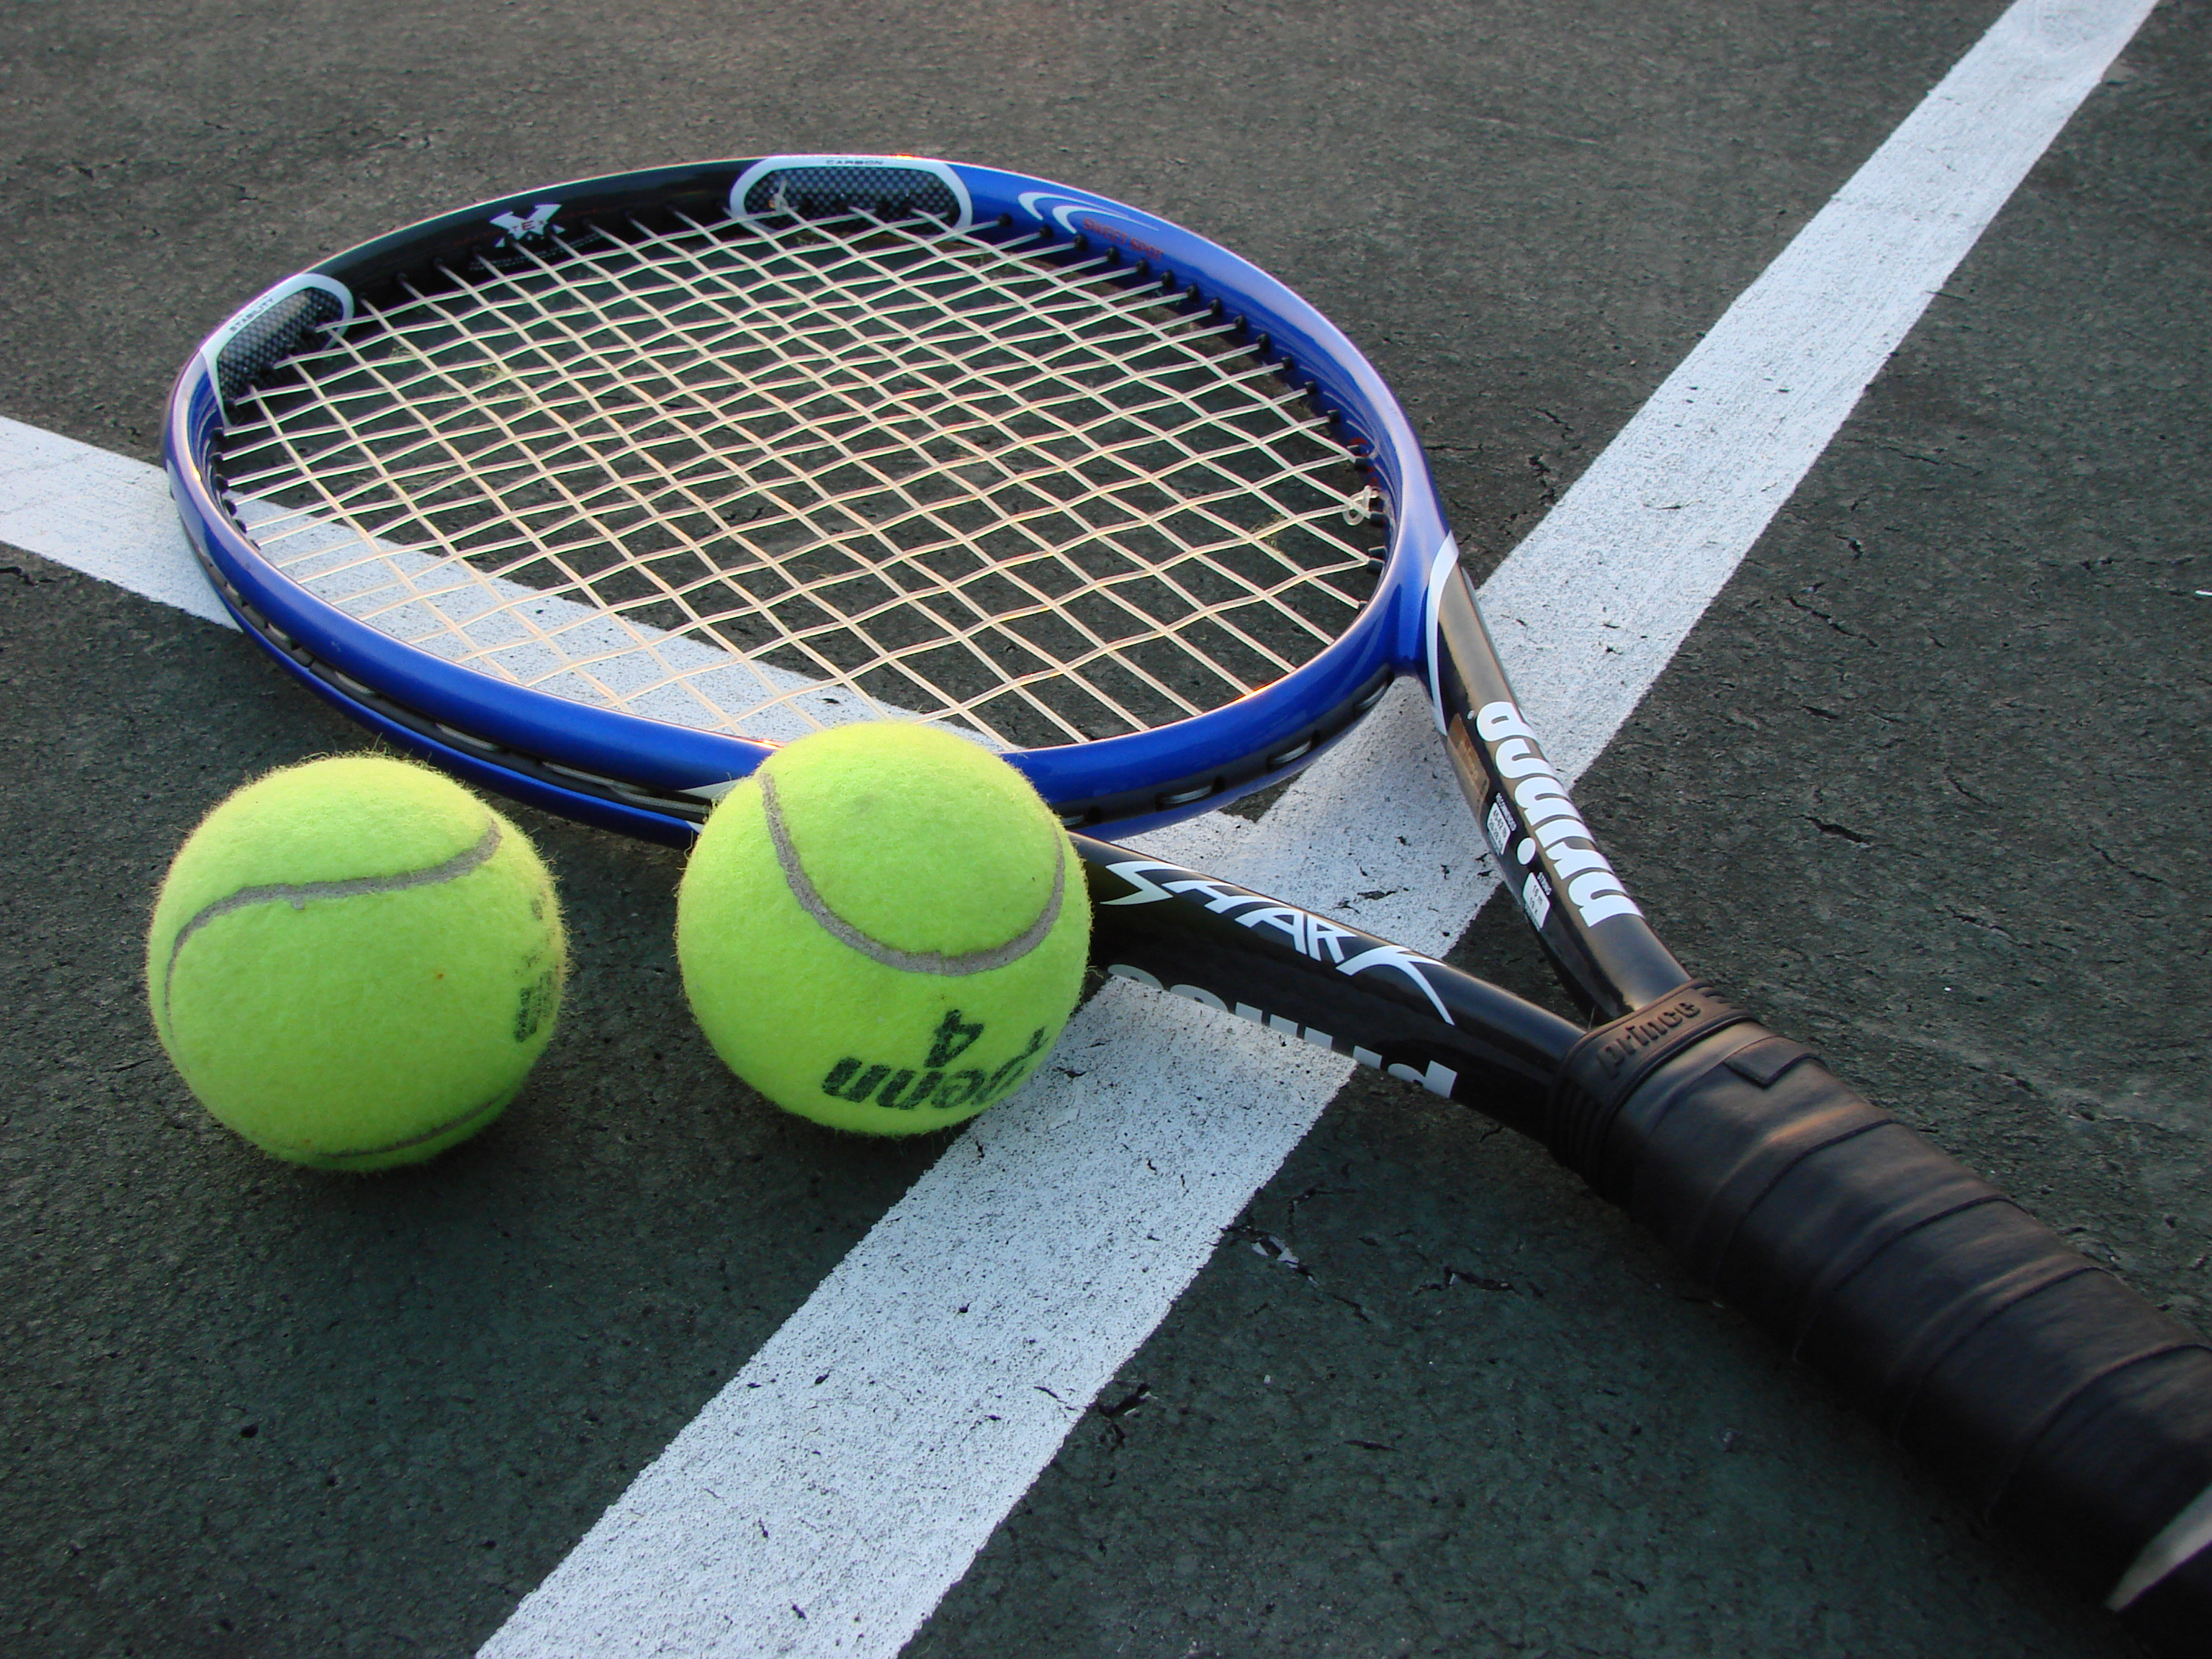 https://upload.wikimedia.org/wikipedia/commons/3/3e/Tennis_Racket_and_Balls.jpg